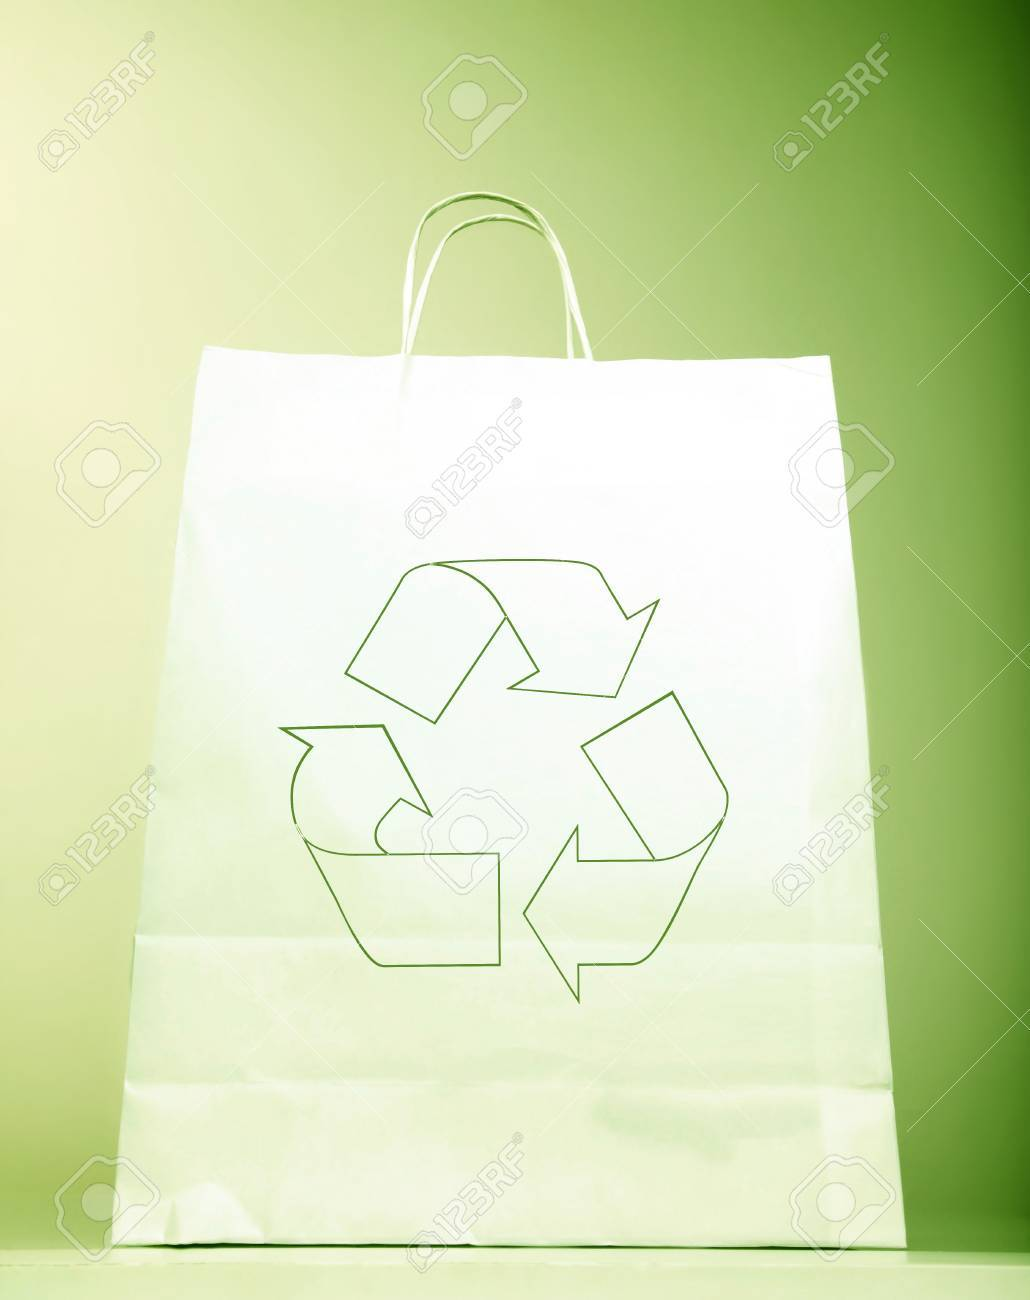 White paper bag with ecology symbol, present with recycle sign isolated on green background, recyclable shopping bag & Eco icon, concept idea to help to save planet  earth from pollution Stock Photo - 16158507